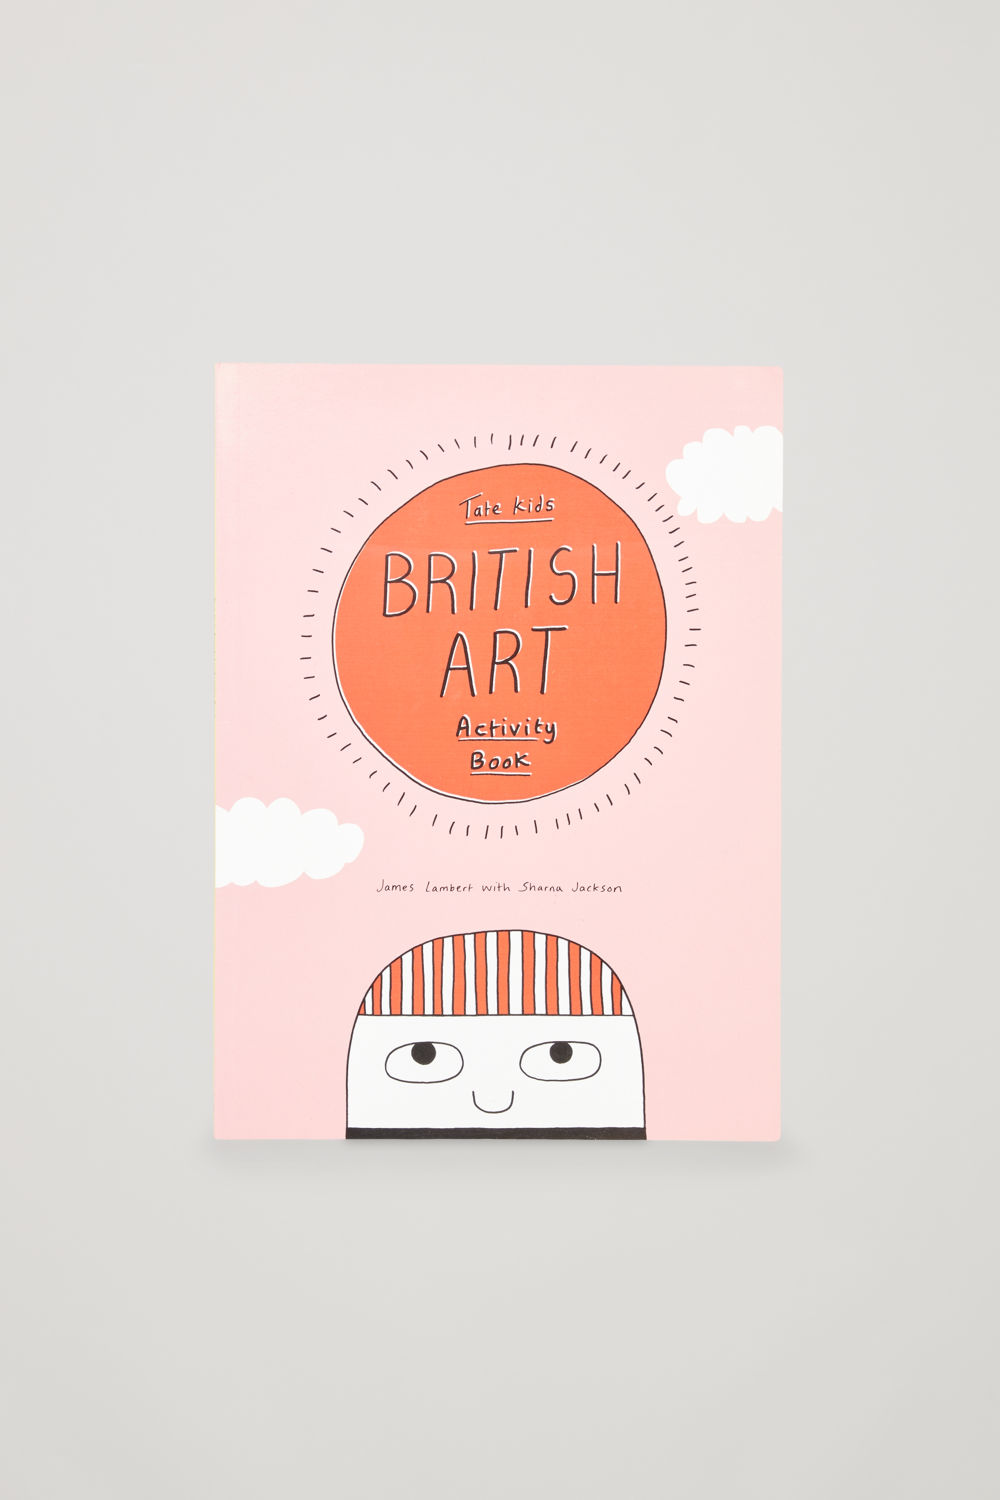 BRITISH ART ACTIVITY BOOK